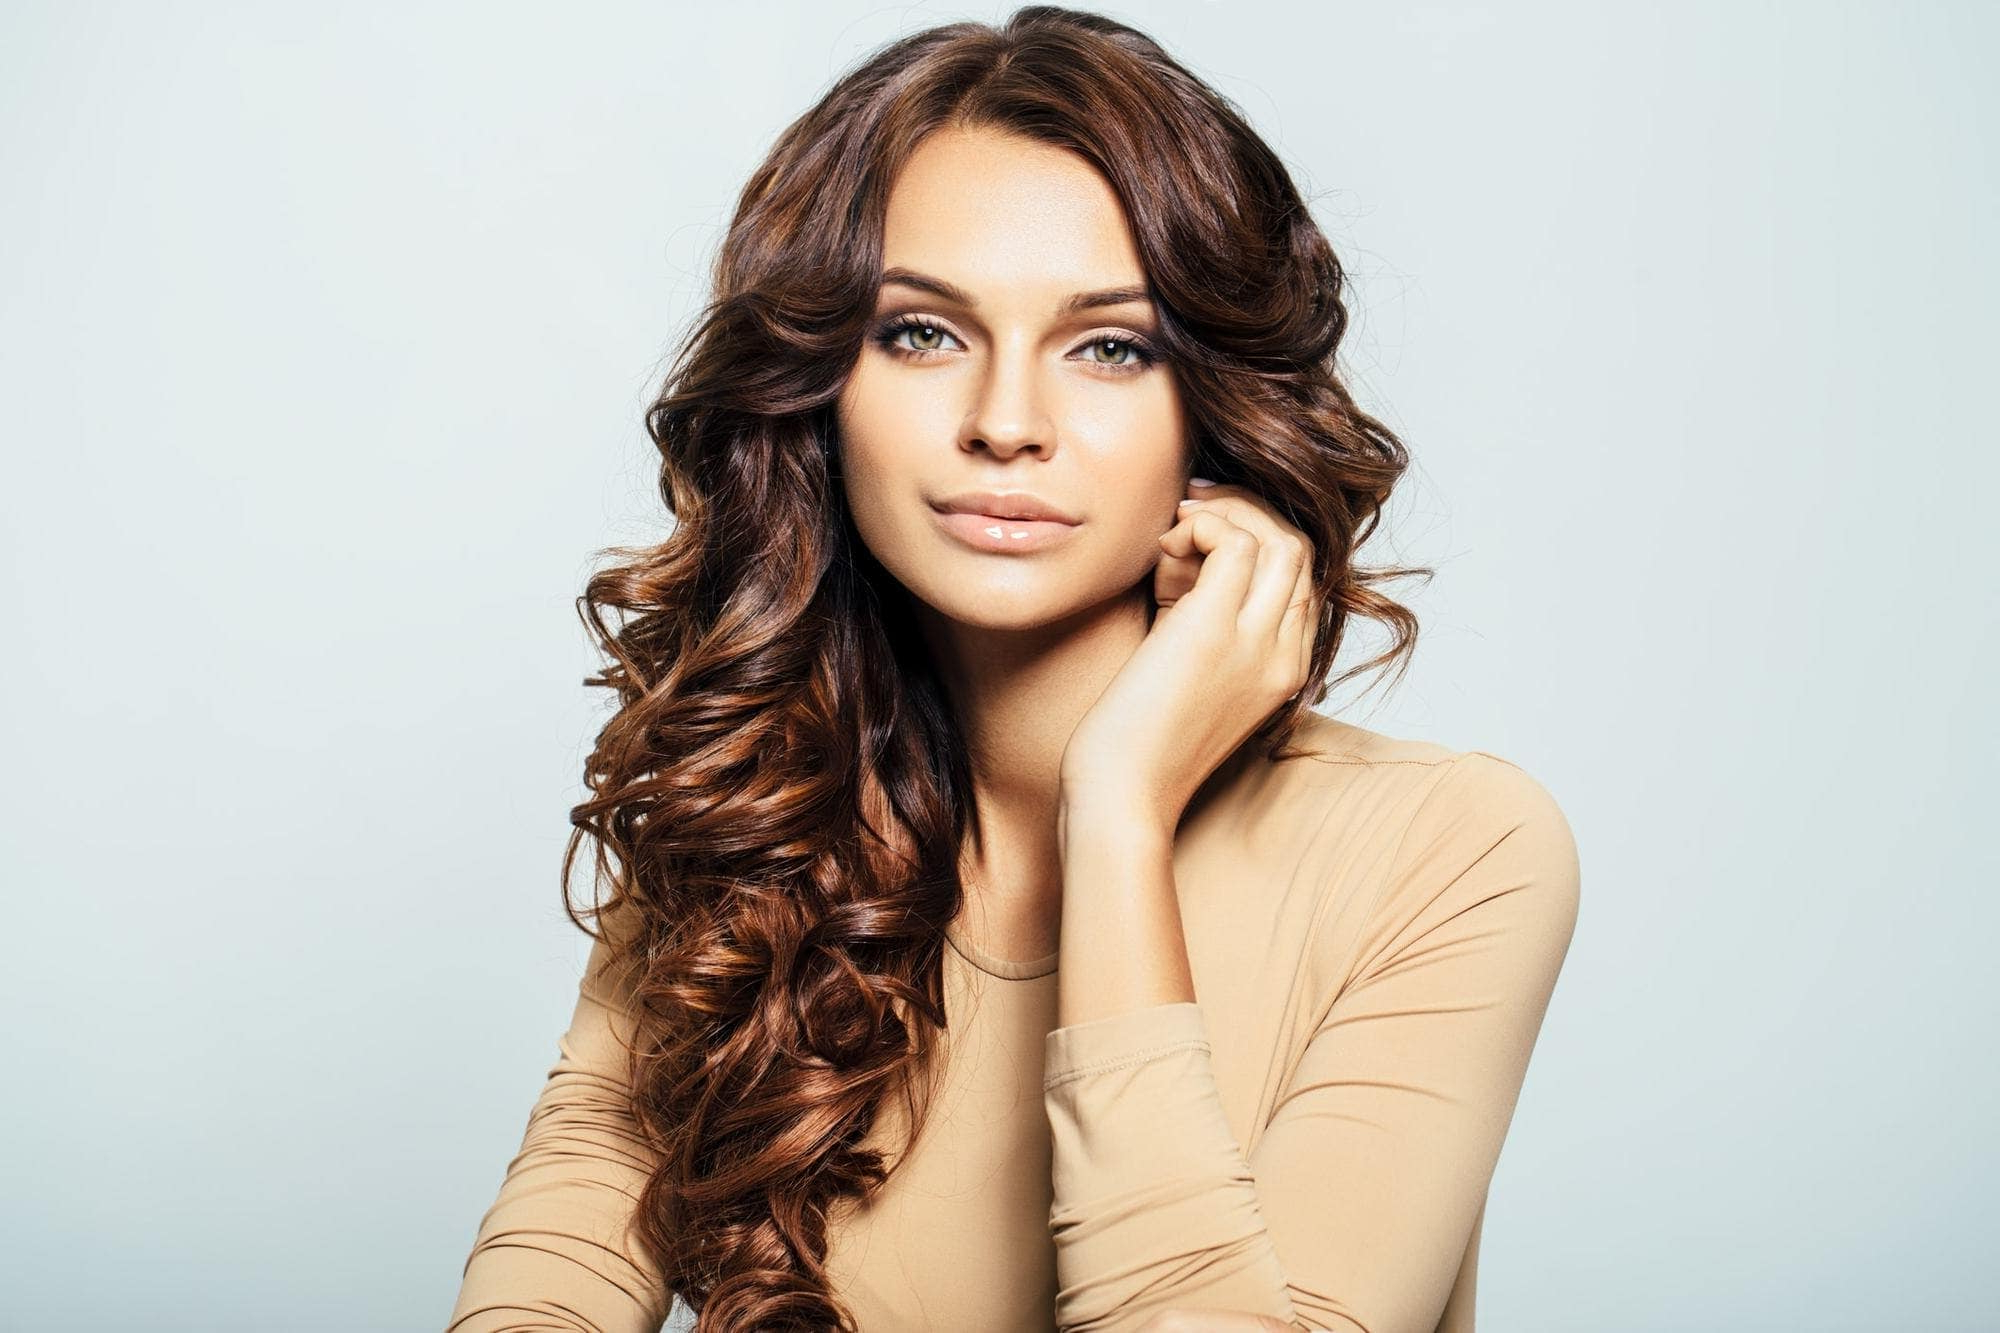 Curly Hair With Highlights: 12 Looks That Help You Lighten Up With Style Intended For Brown Curly Hairstyles With Highlights (View 8 of 25)